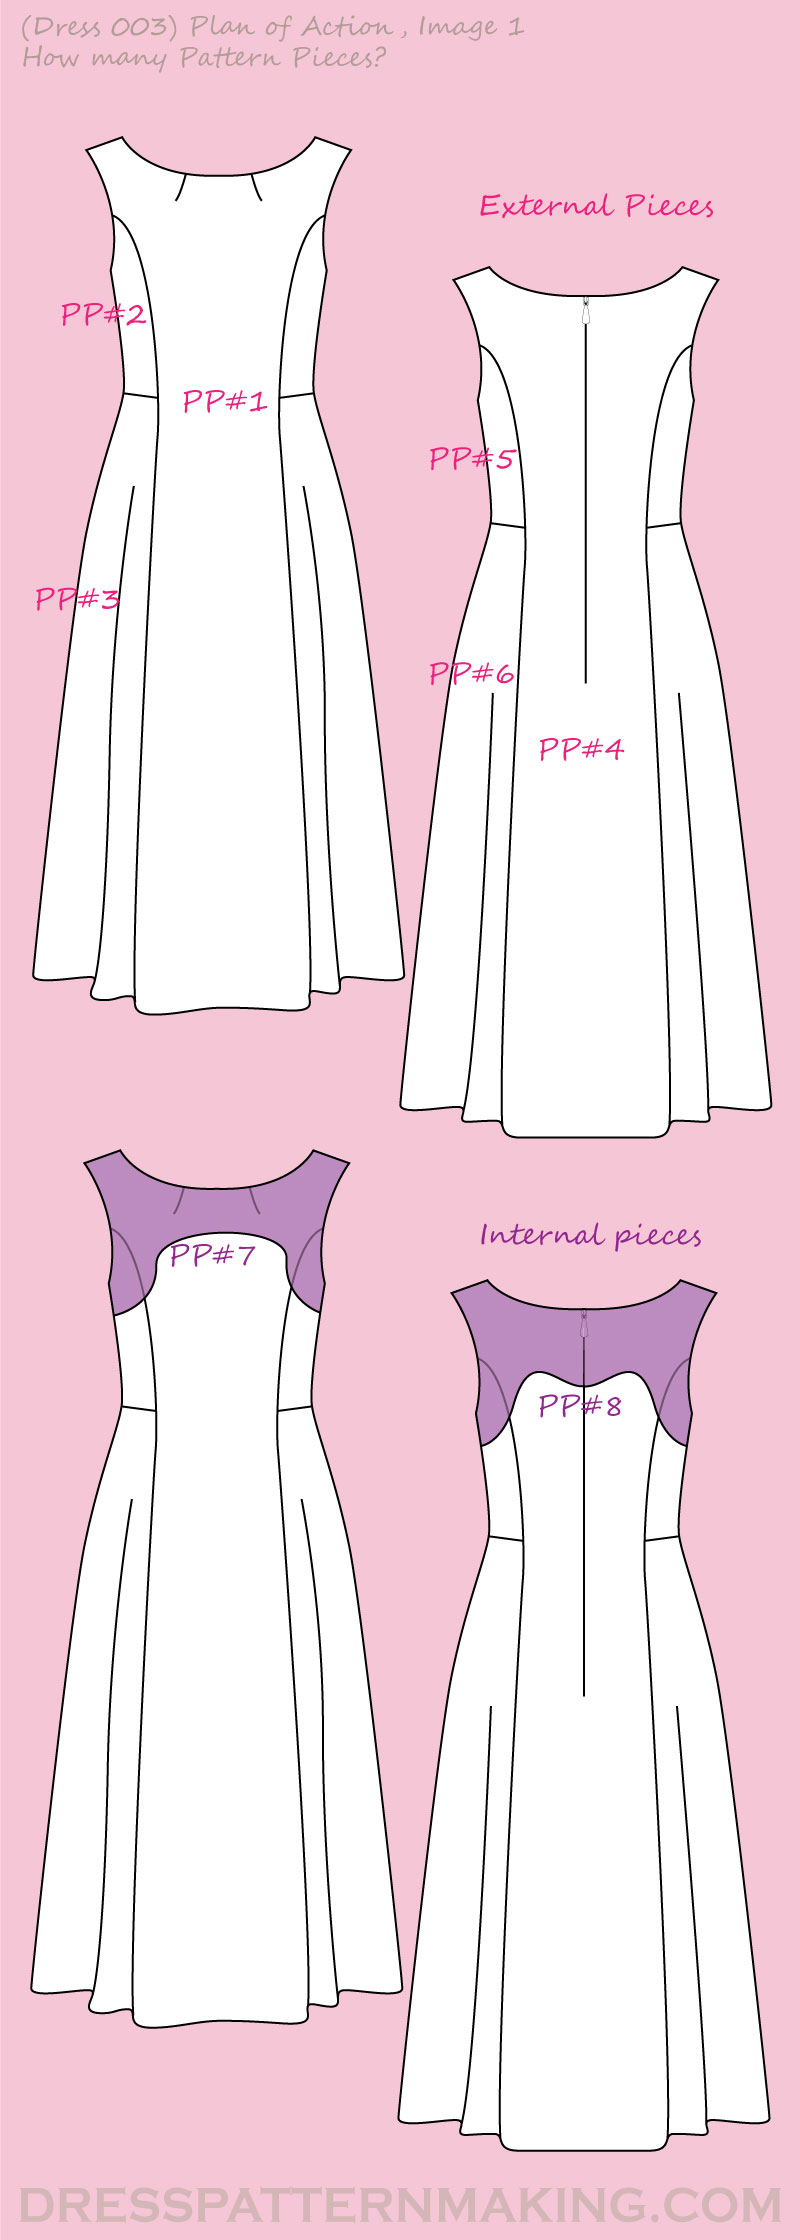 dress 003 POA pattern pieces